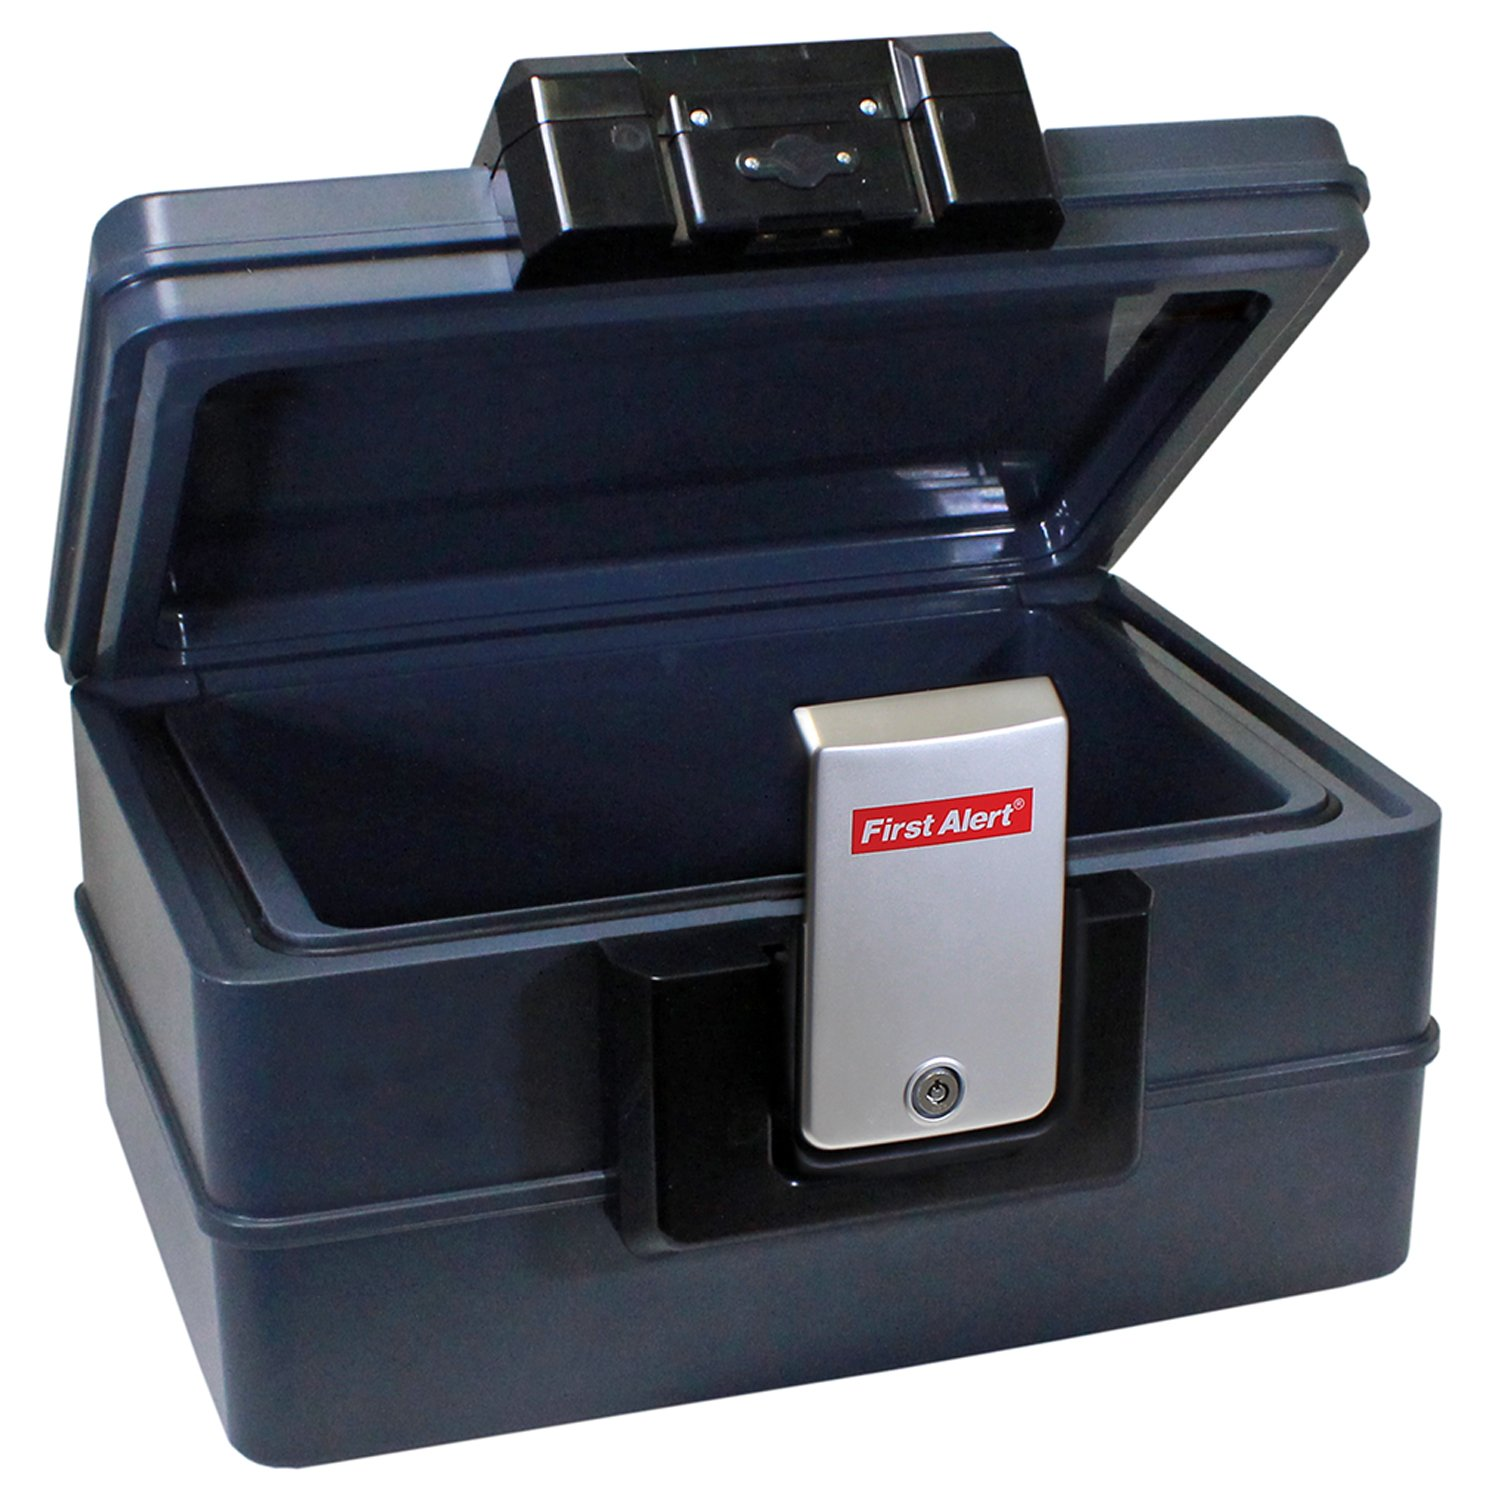 First Alert 2602DF Waterproof Fire Chest with Digital Lock, 0.39 Cubic Feet by First Alert